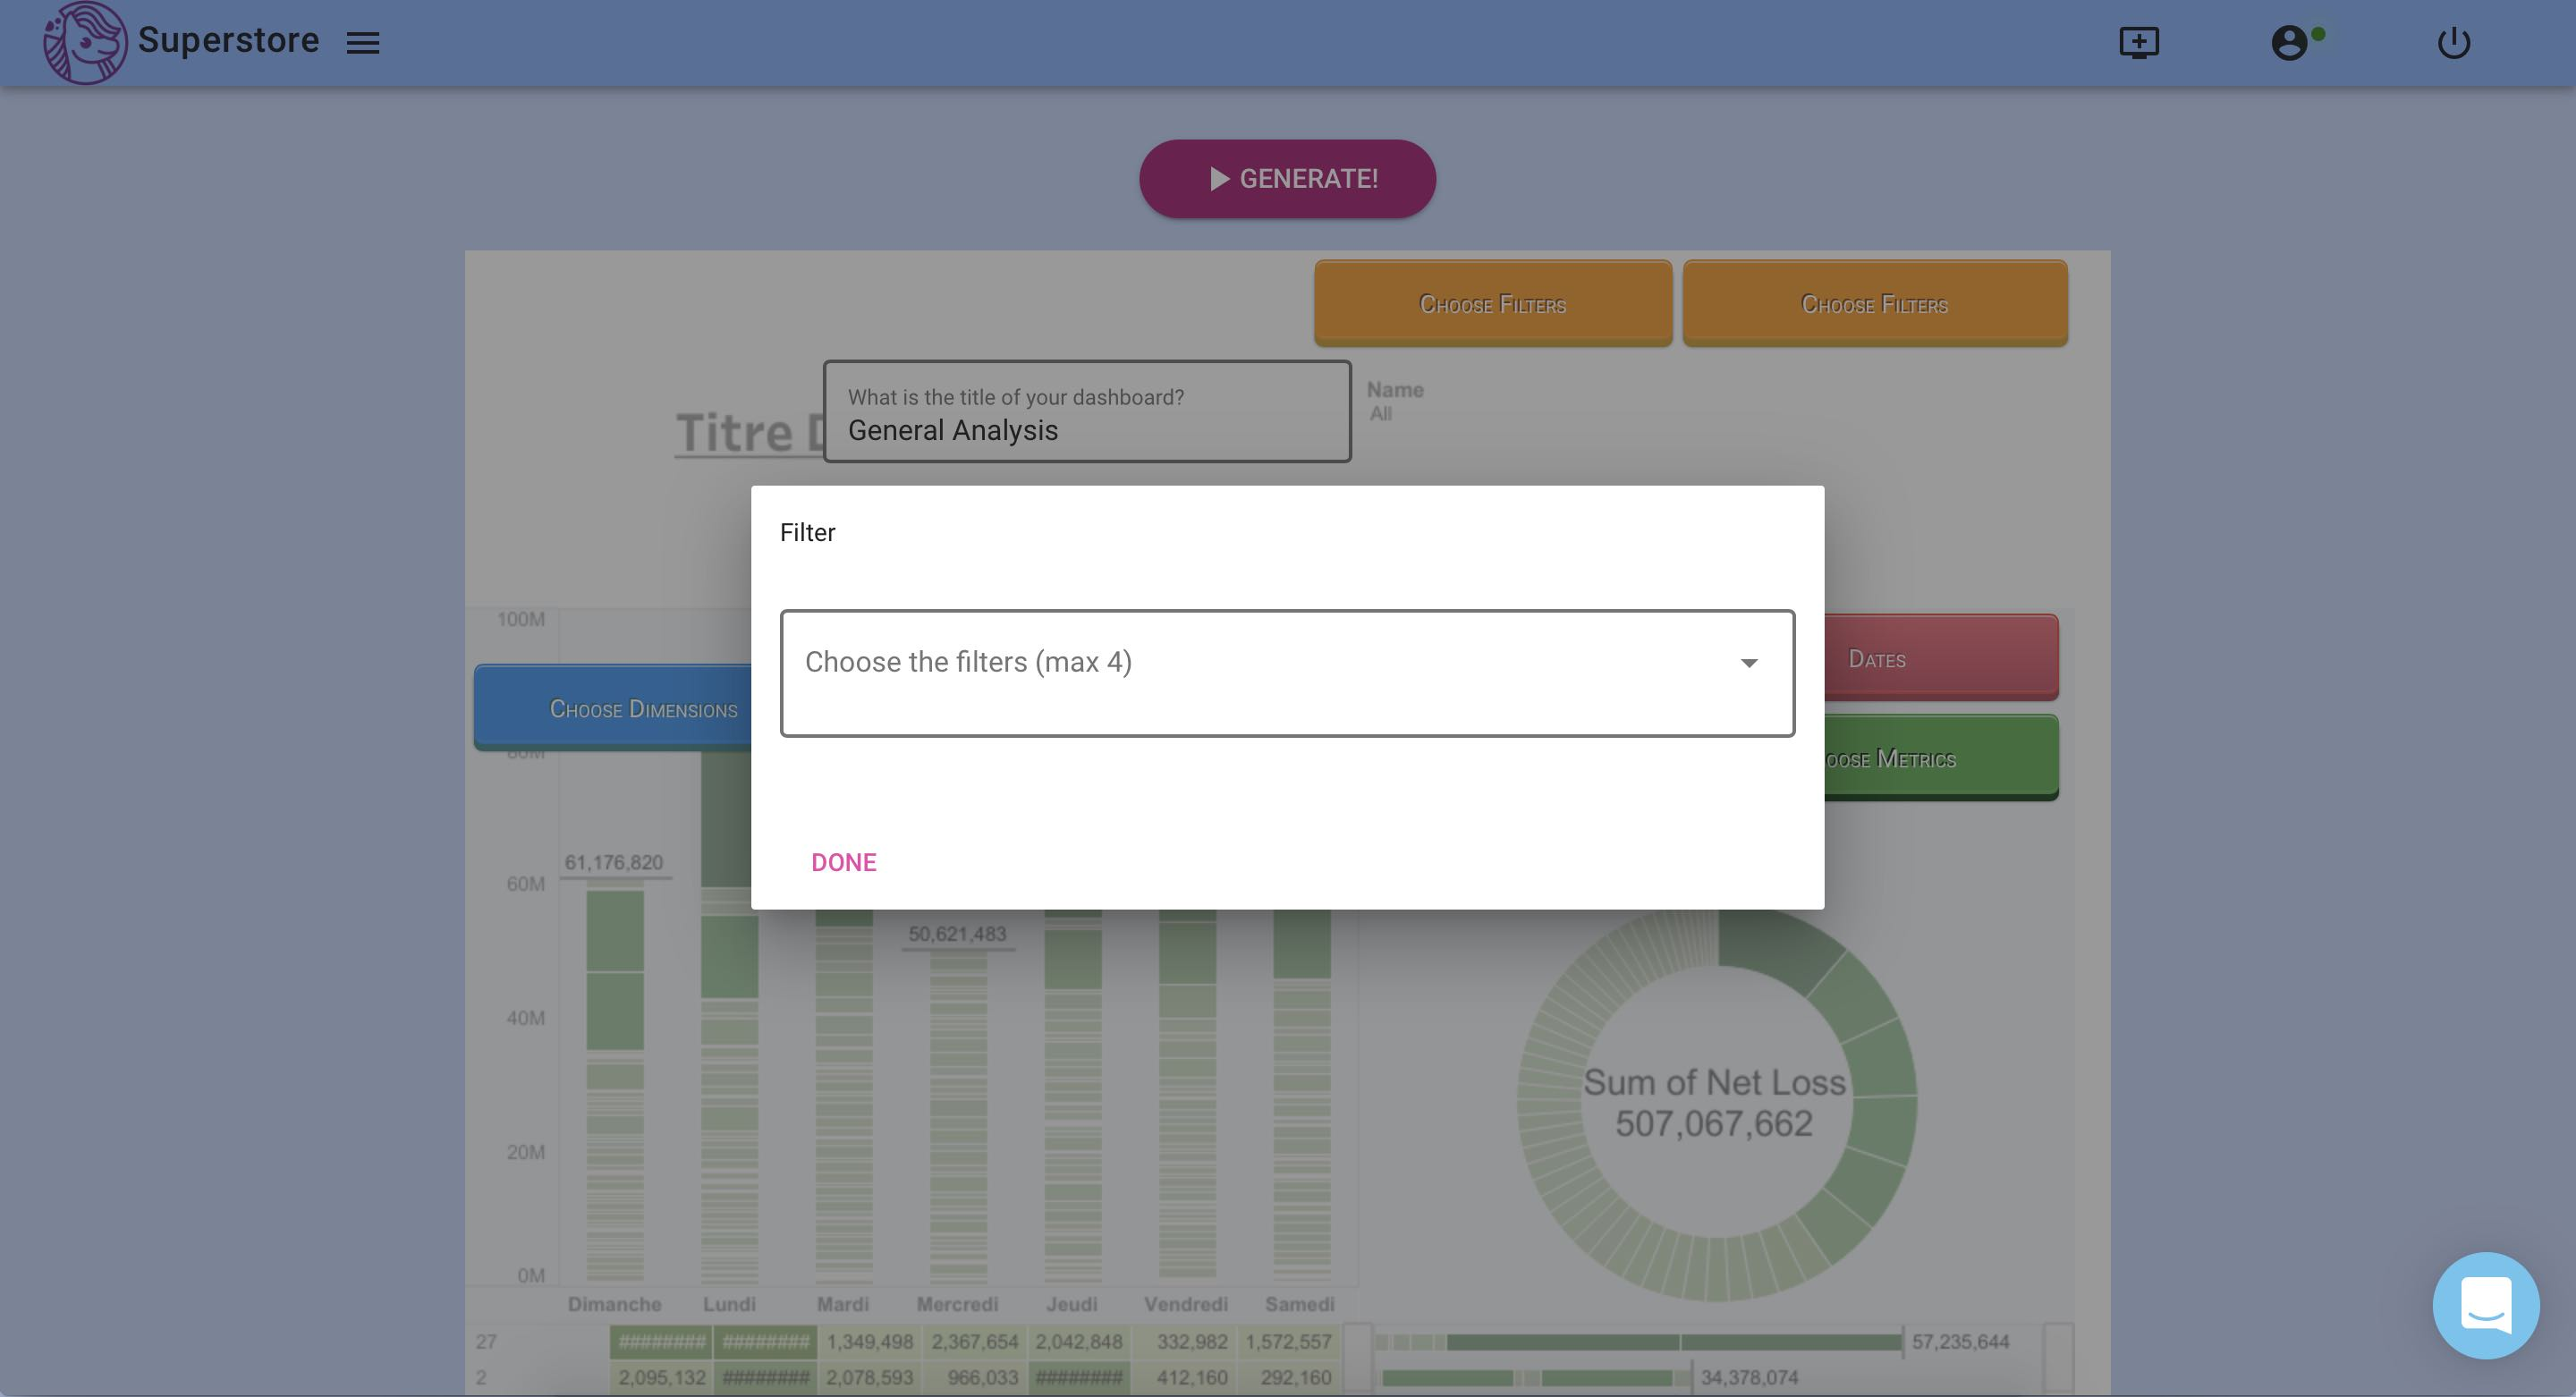 Adding filters to our dashboard